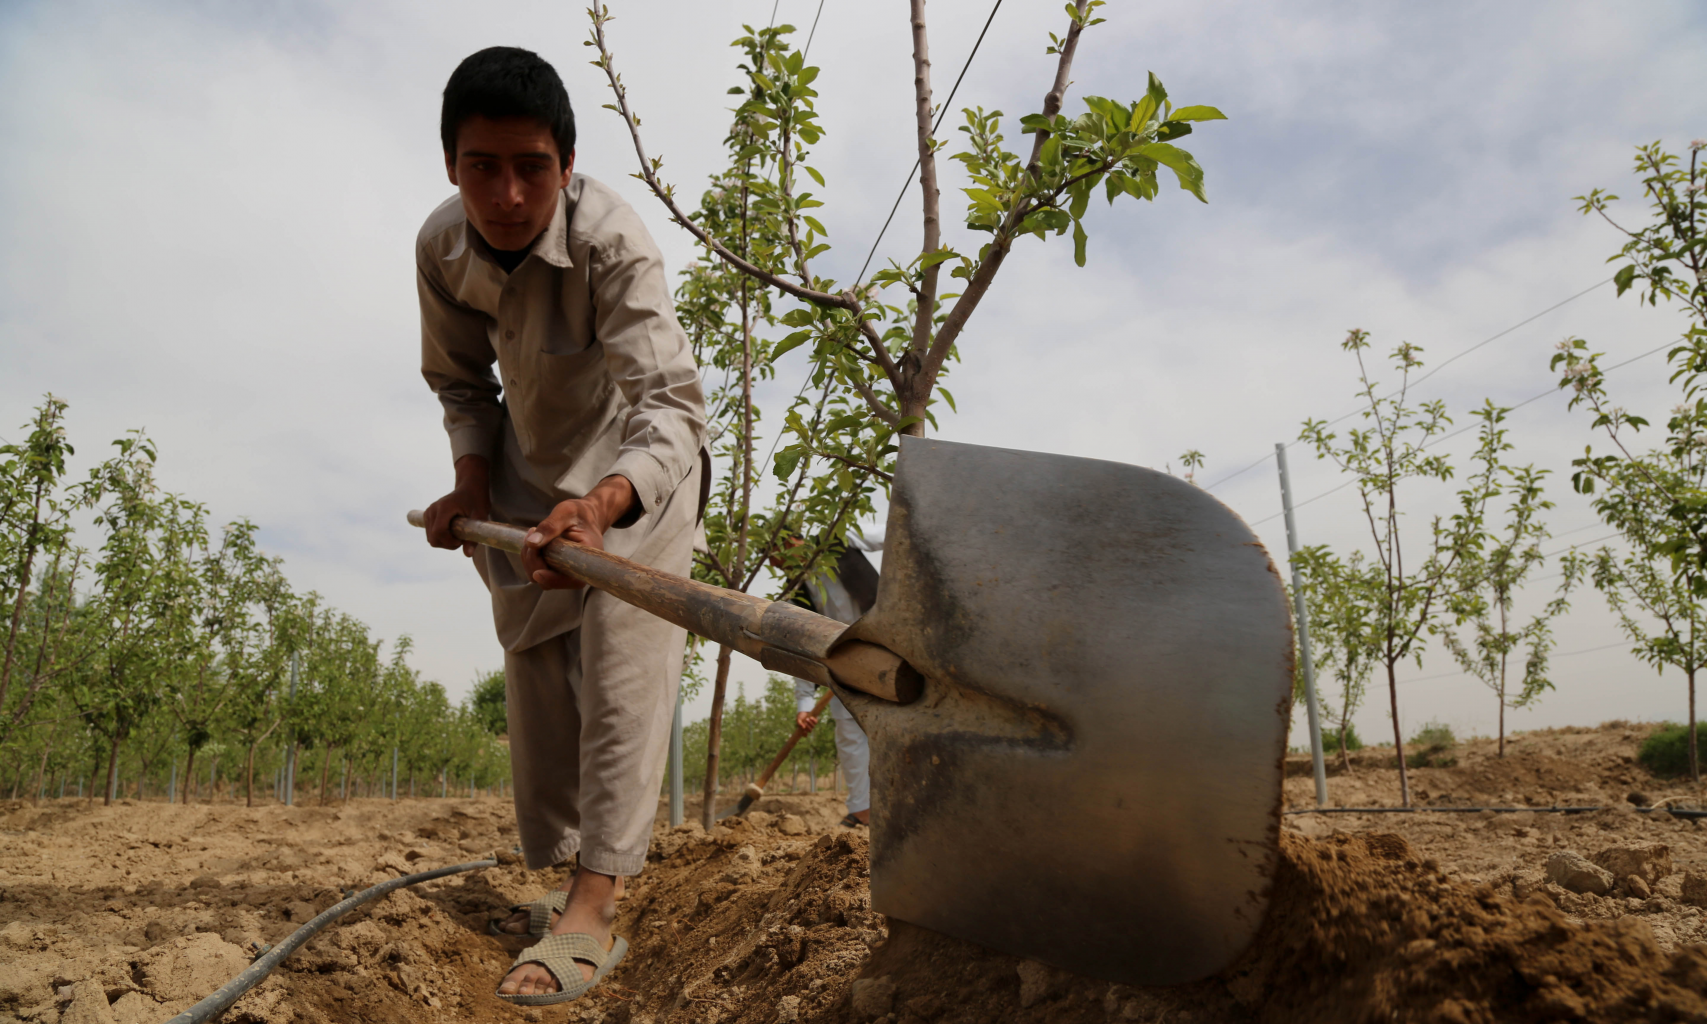 Burjak Village, Shakardara district, Kabul, Afghanistan,Abdul Waseh's son leveling out the tree-side raised beds. Photo by World Bank Creative Commons